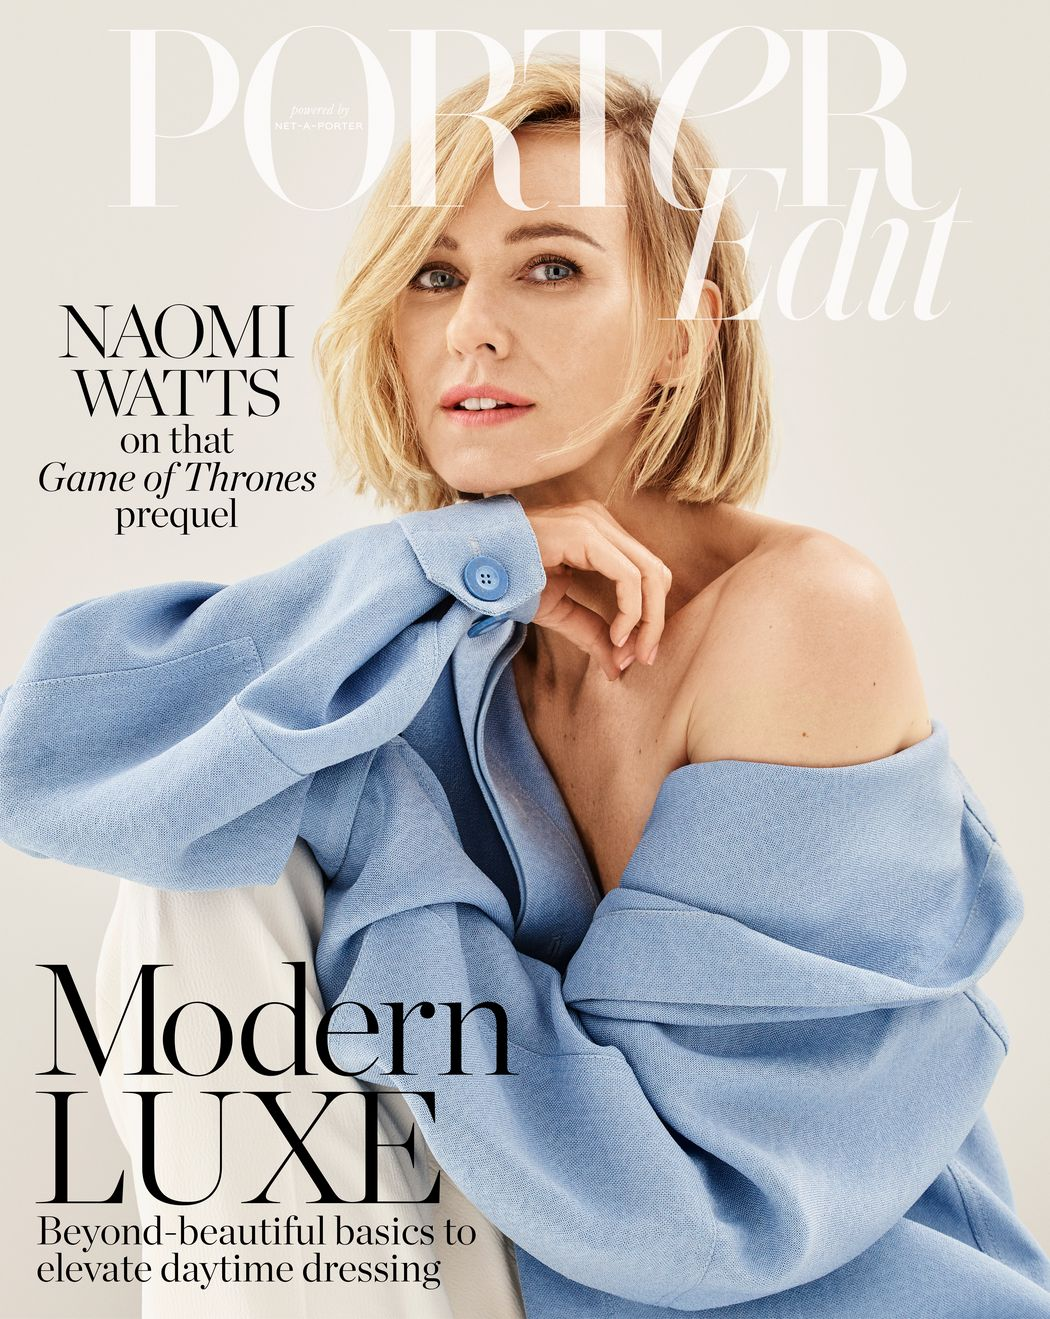 Naomi Watts by Jason Kibler for Porter Edit Aug. 2, 2019